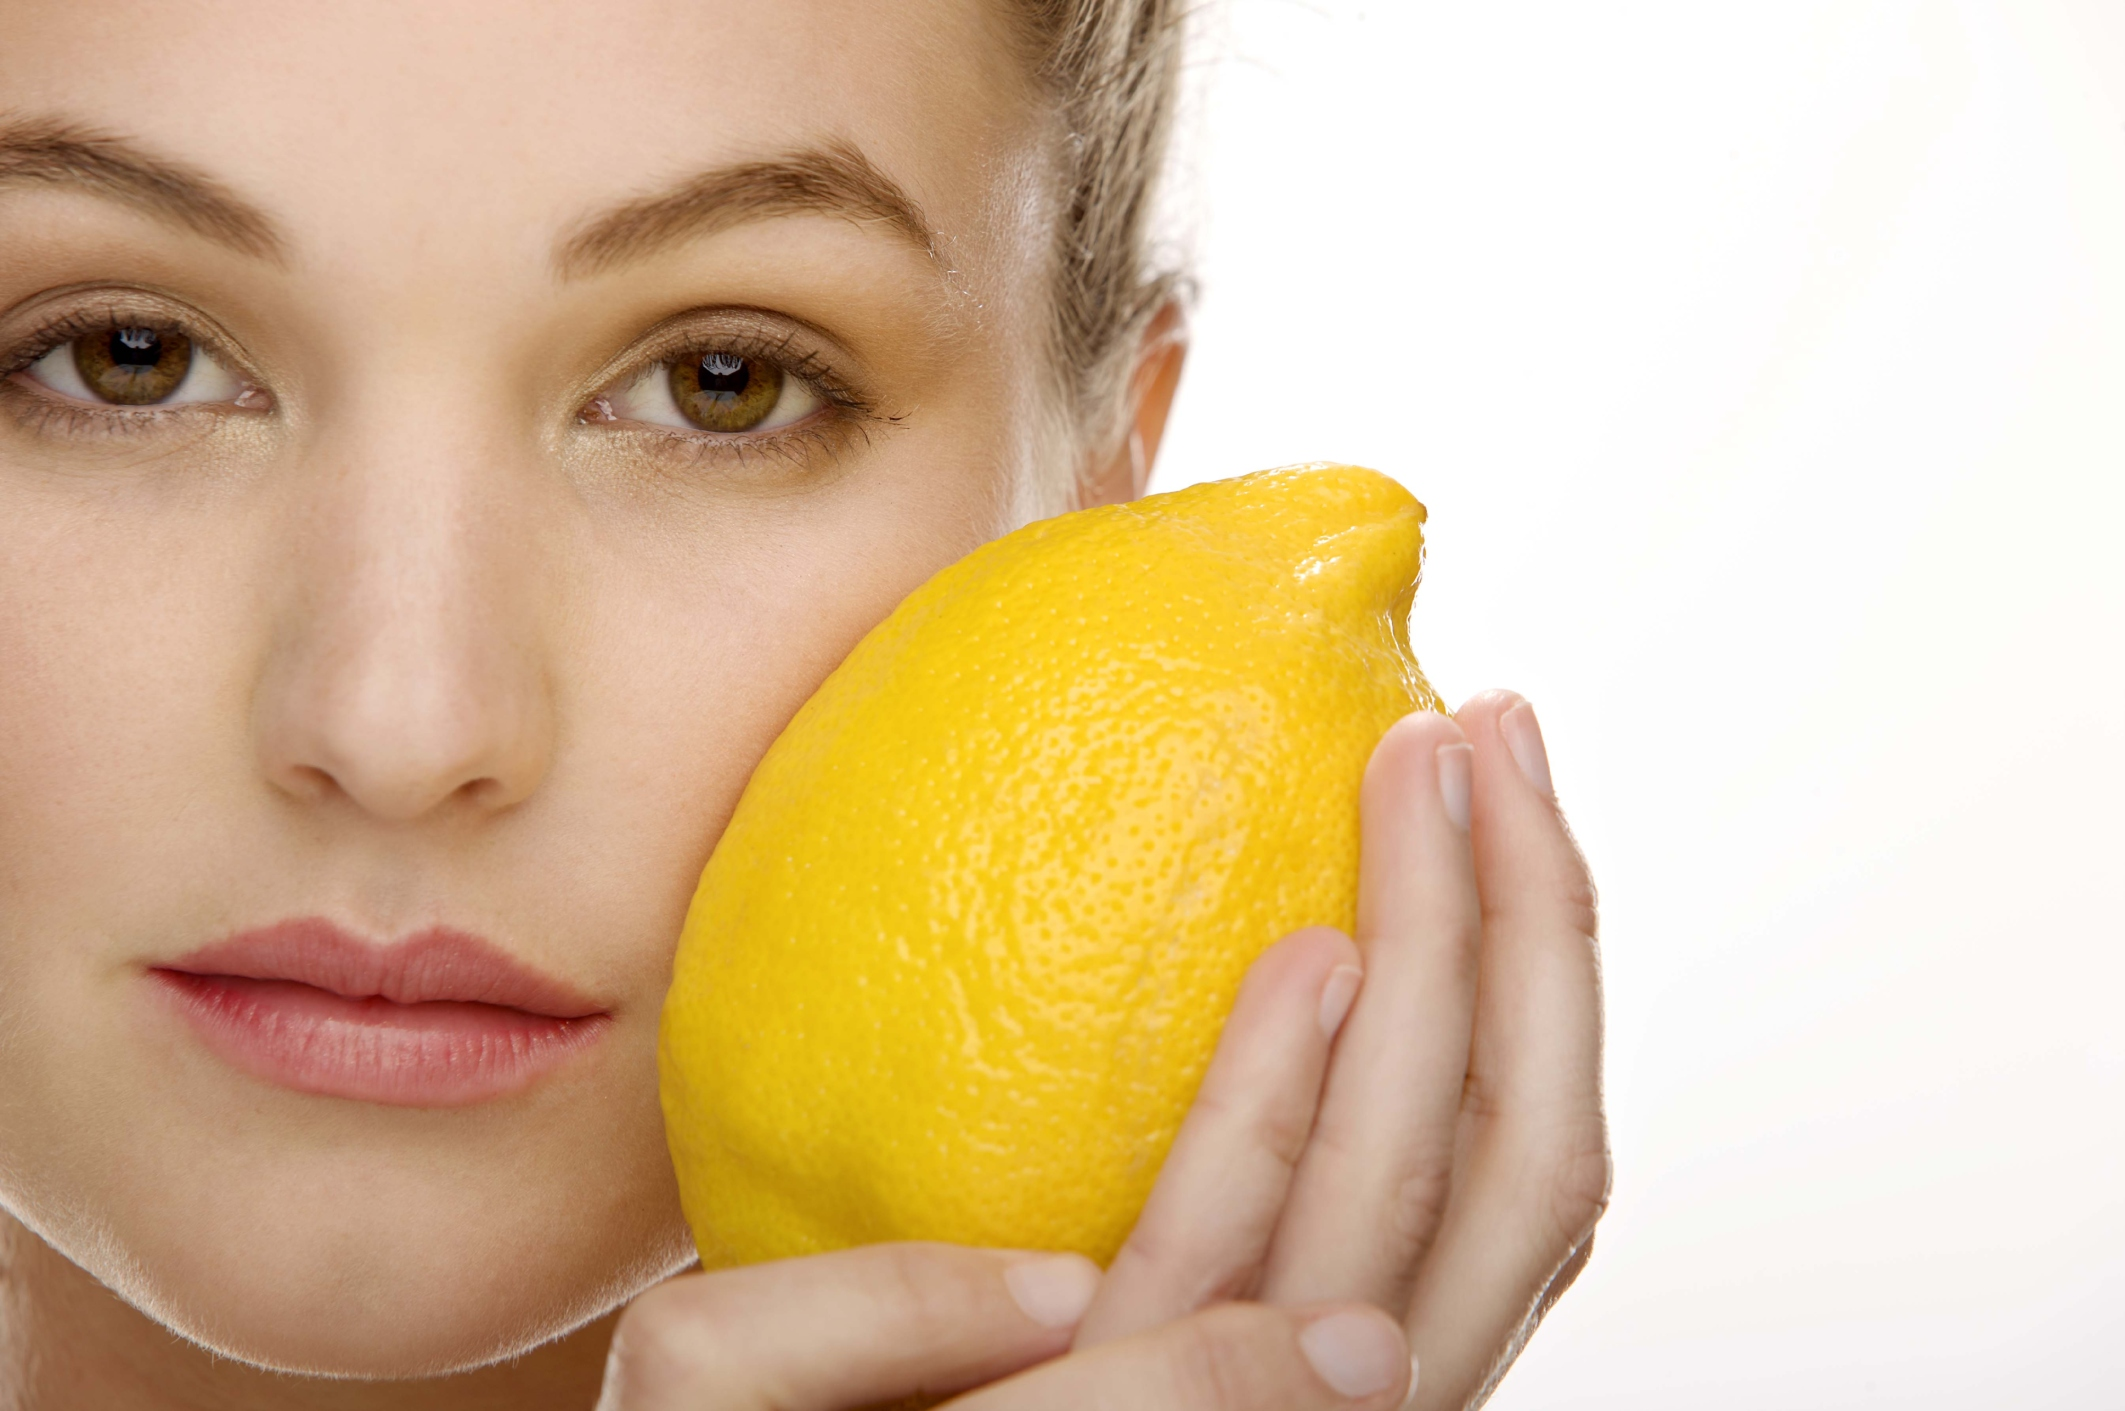 Lemon may be damaging if left on skin too long.